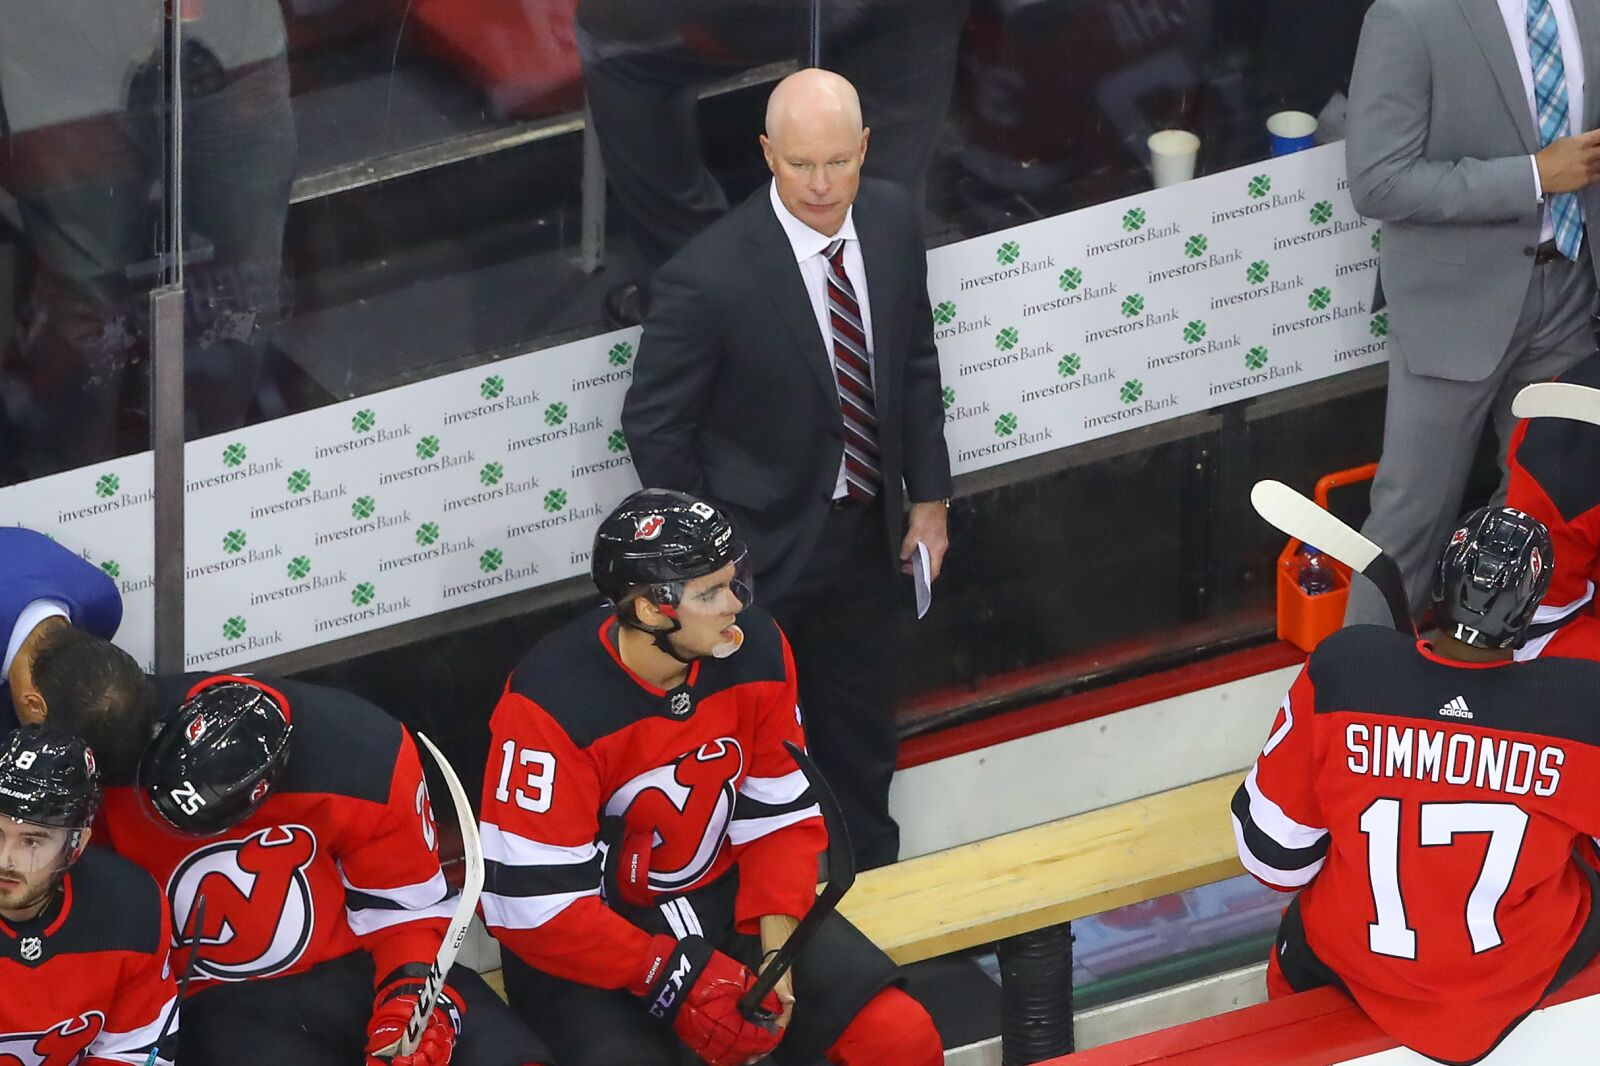 New Jersey Devils Need To Seriously Consider What To Do At Head Coach